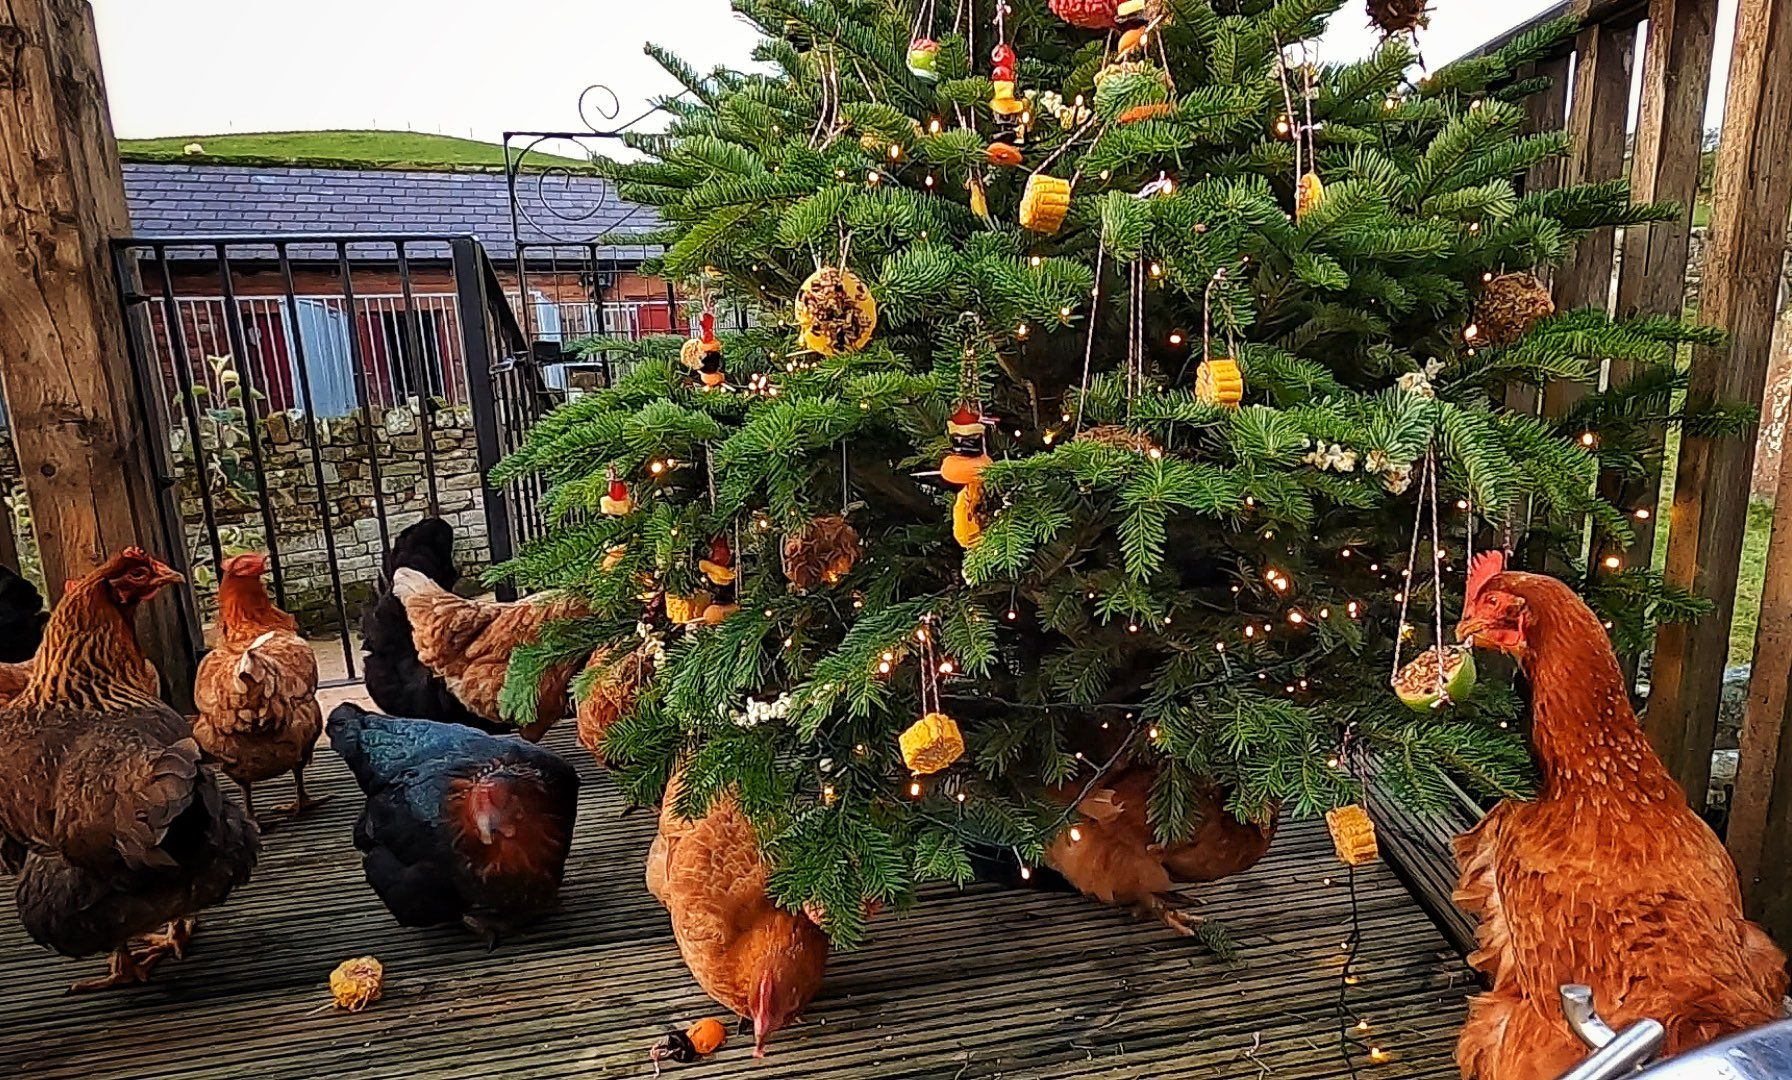 Countryfile's Hannah Jackson unveils edible Christmas tree for wild birds and chickens on farm